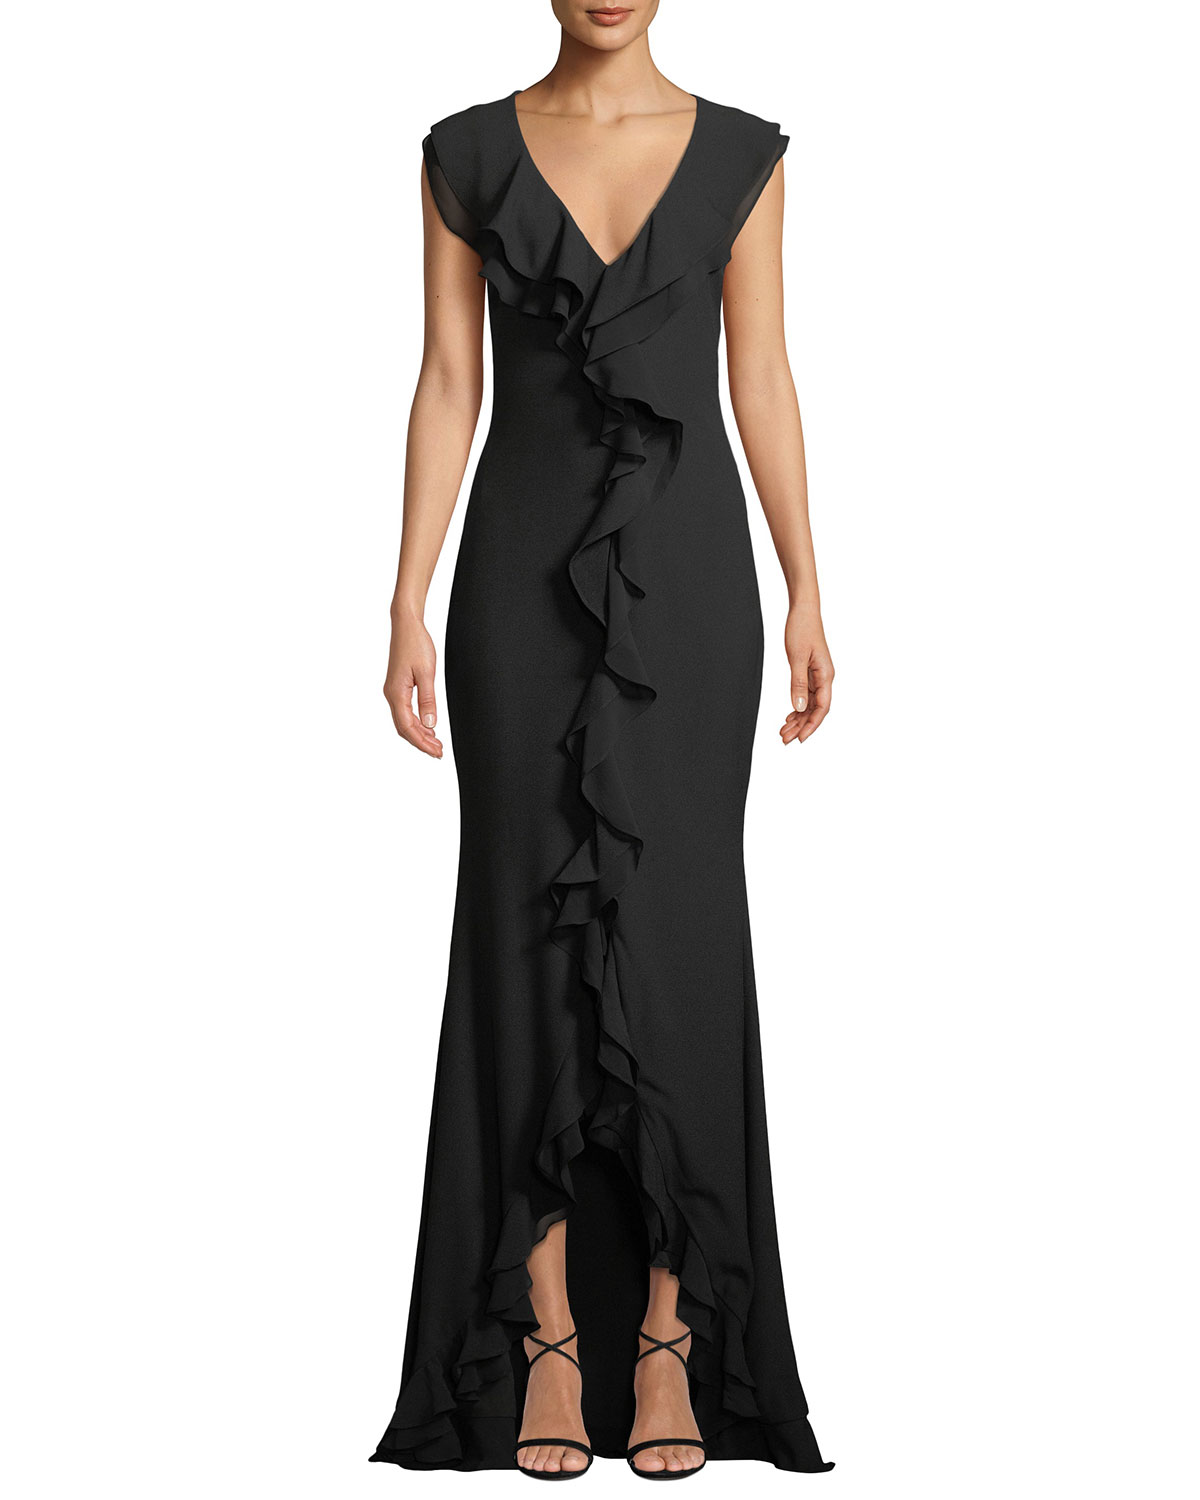 Aiden V-Neck Cascade Ruffle Gown